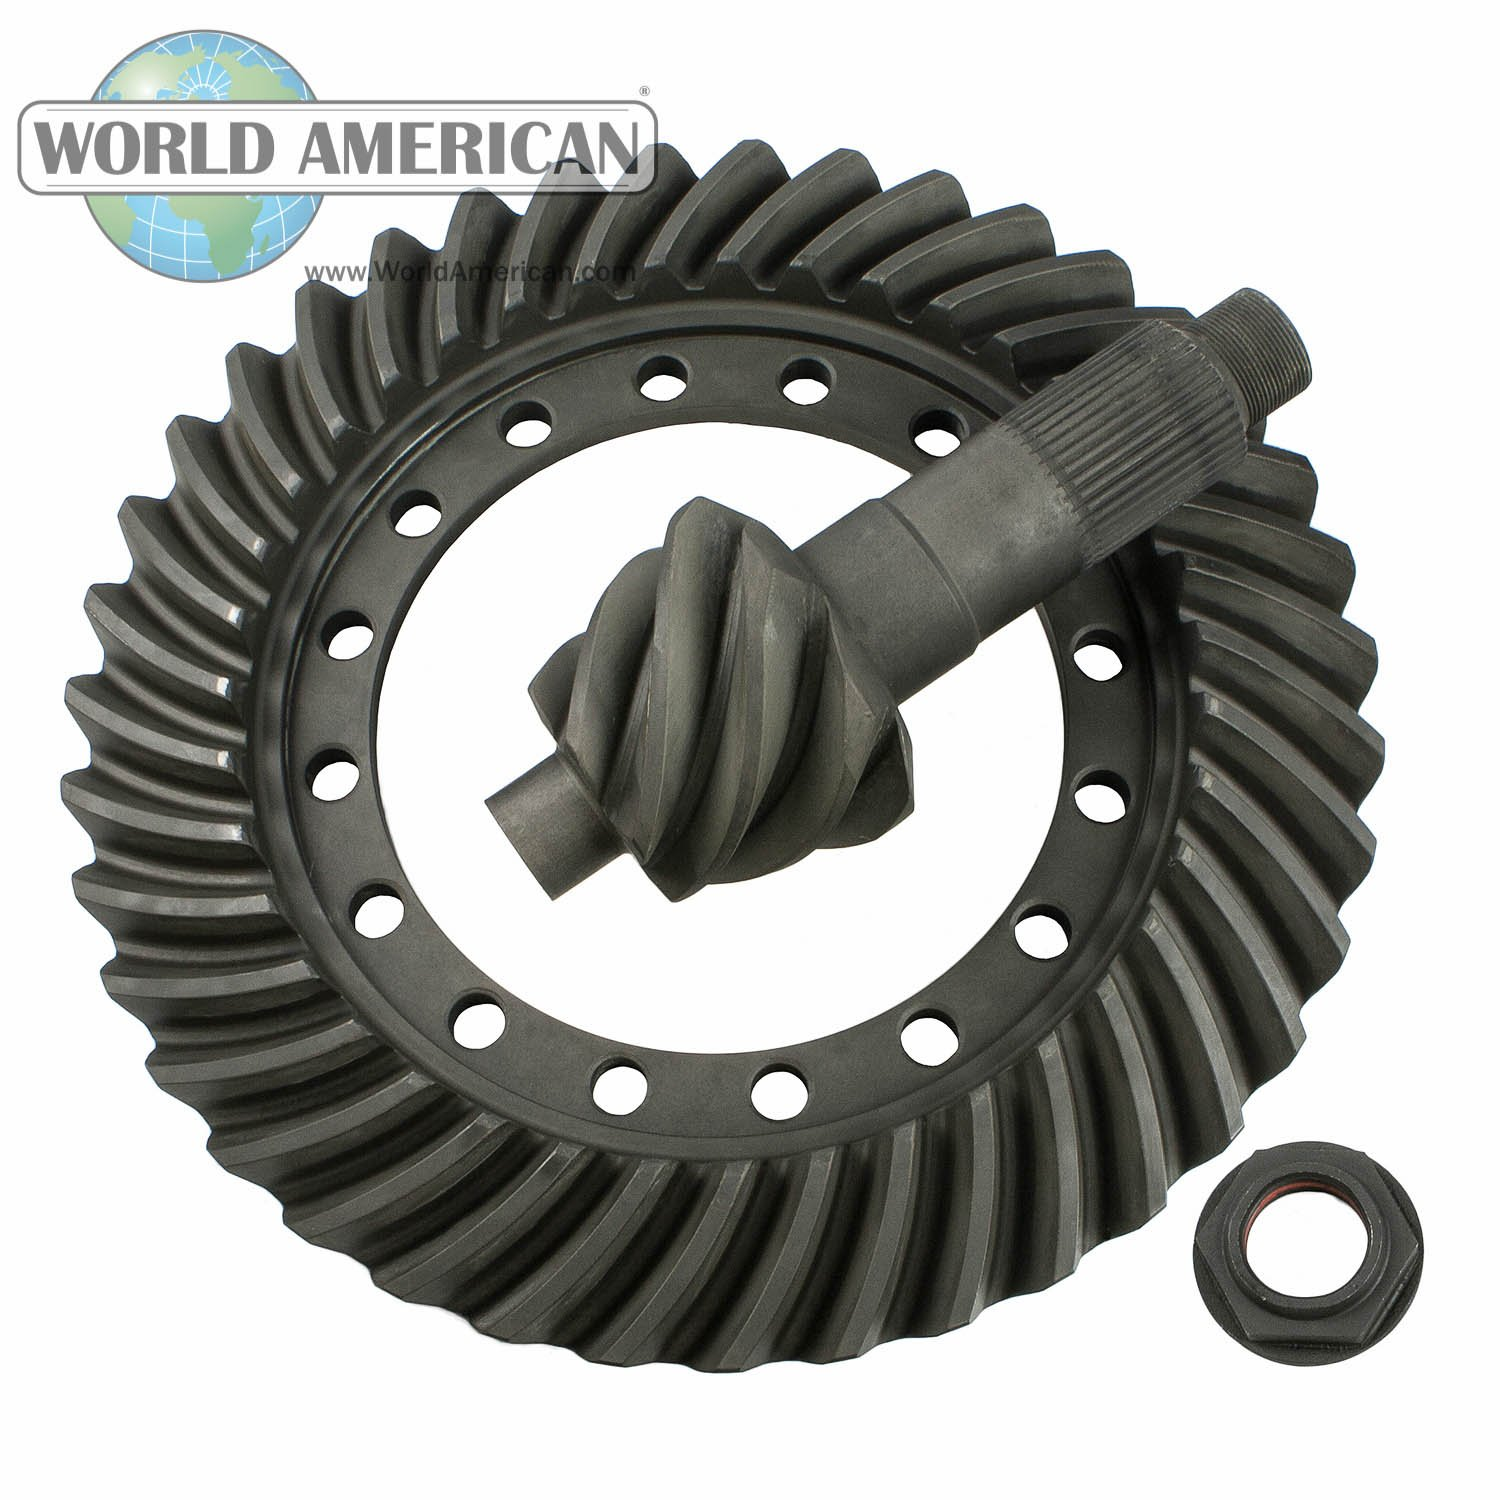 World American 513366 Eaton Ring and Pinion RS404 4.33 Ratio